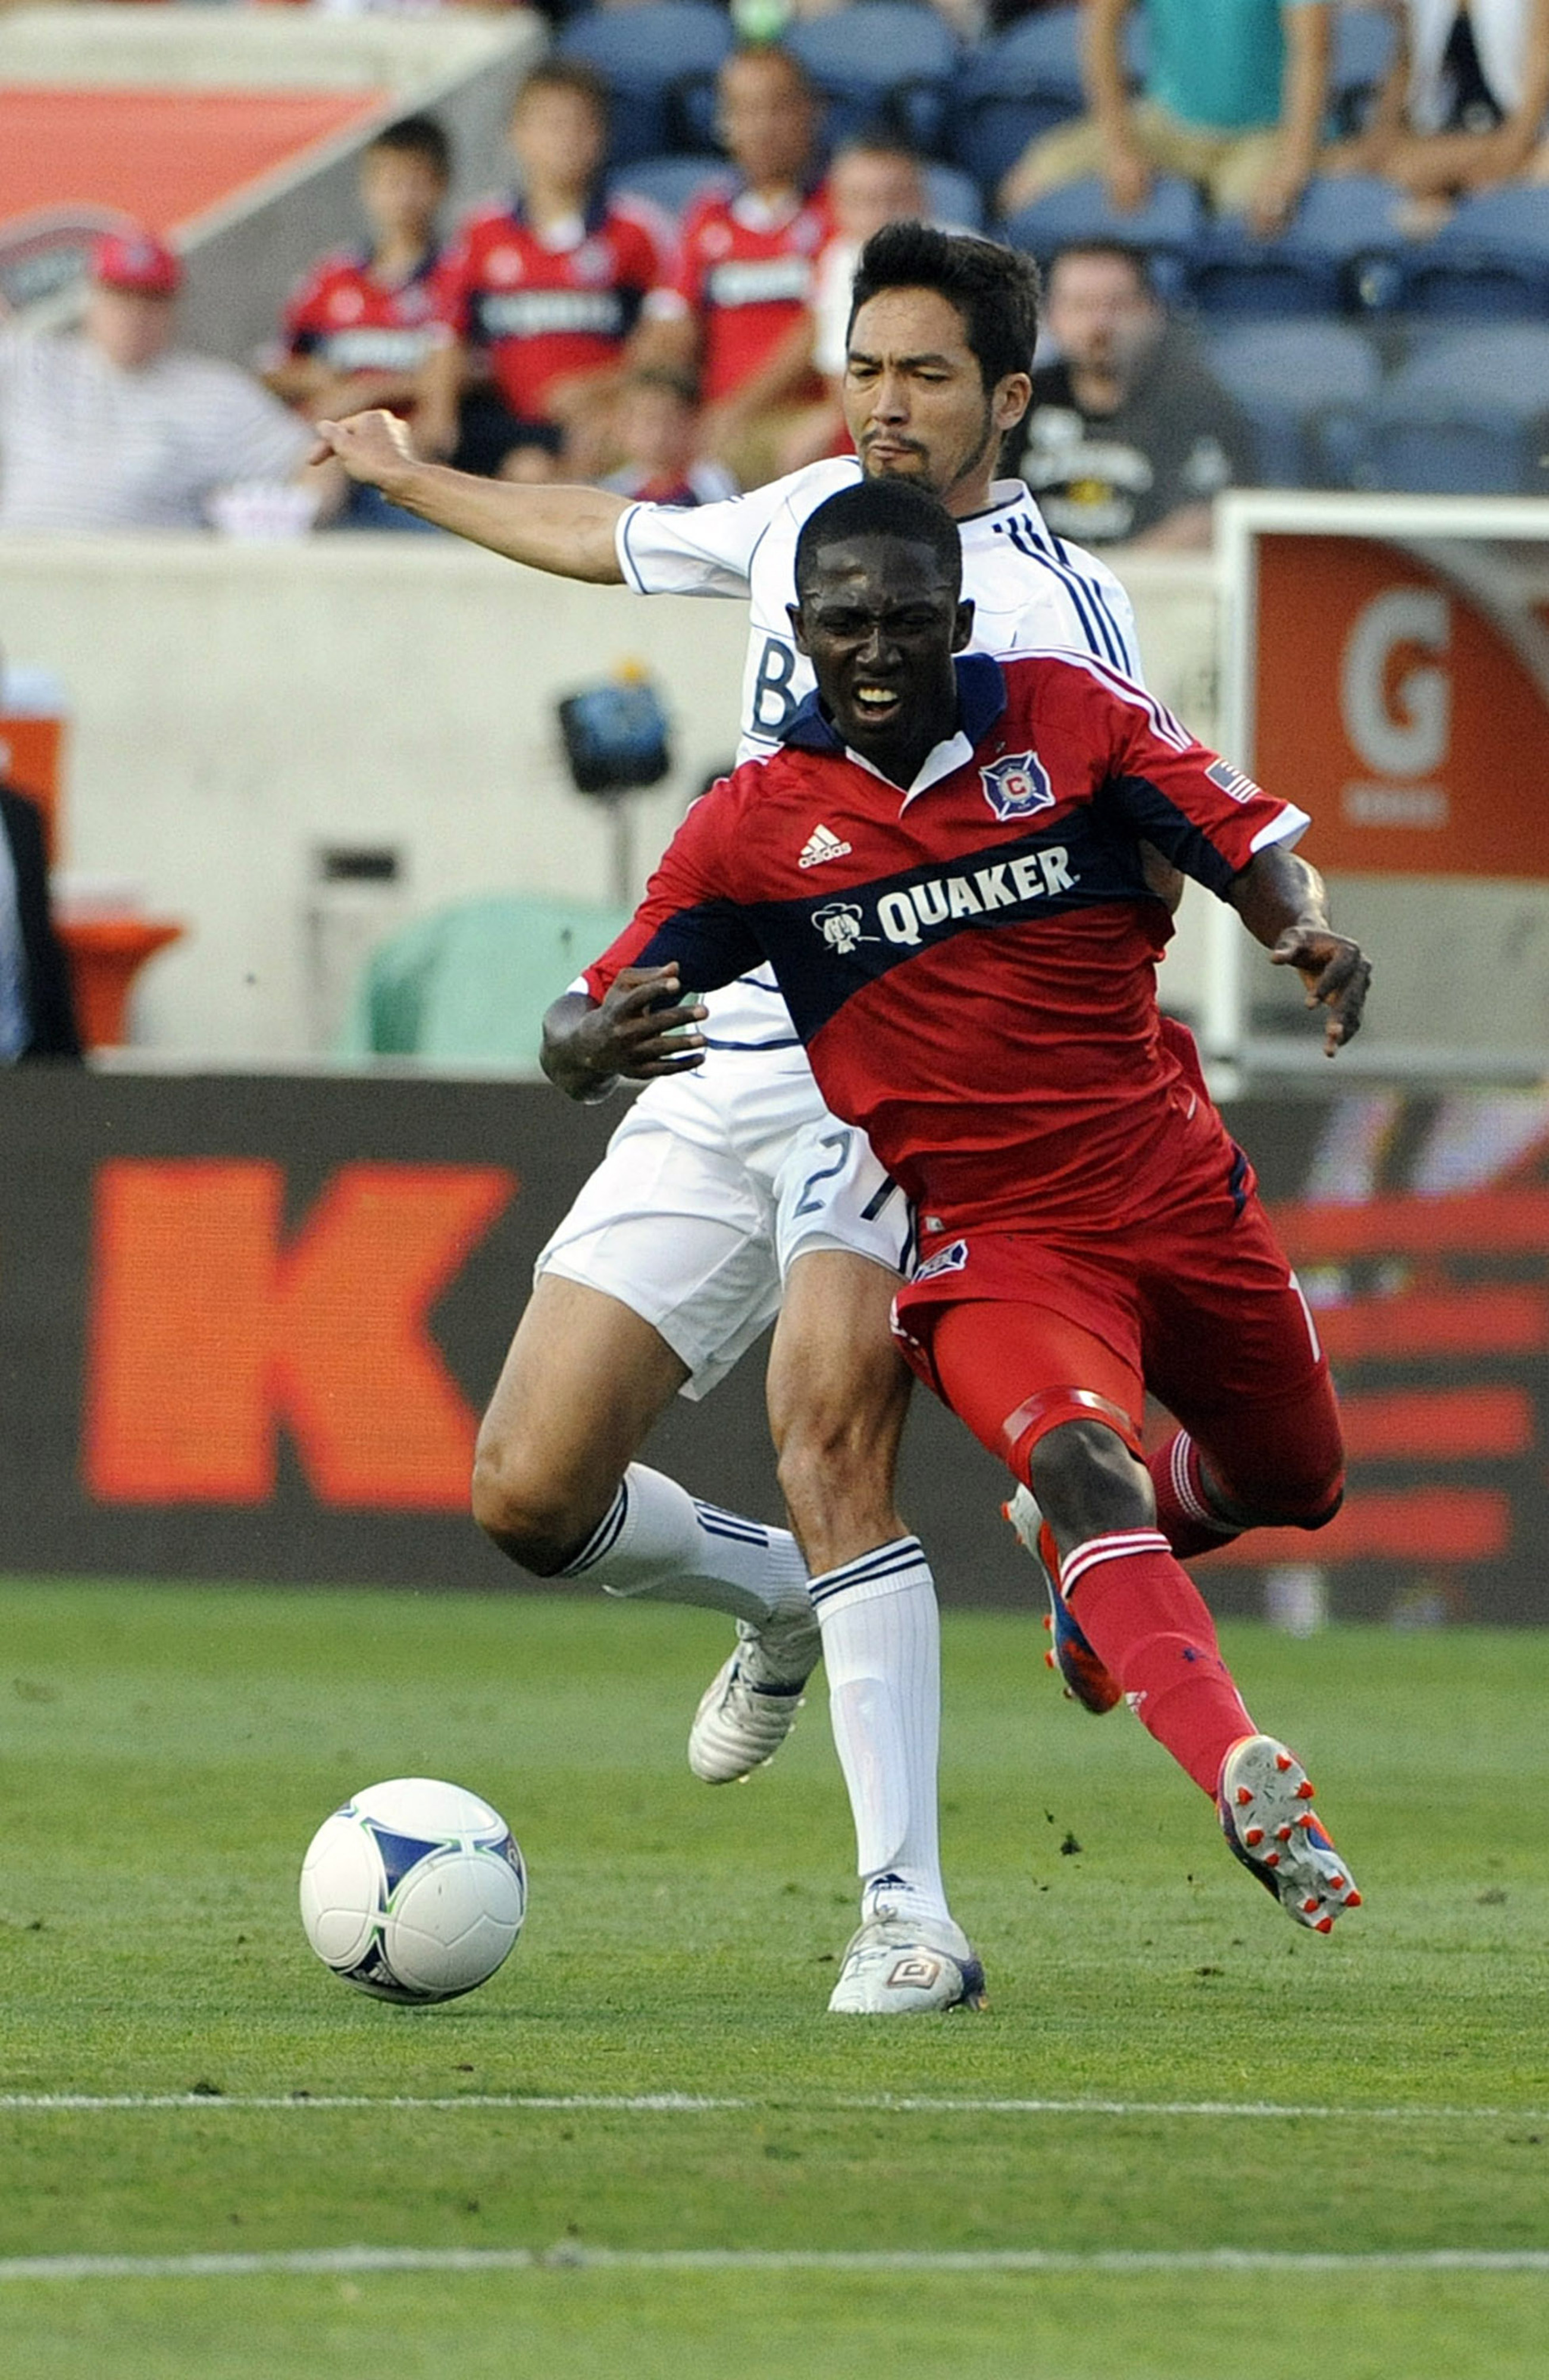 BRIDGEVIEW, IL - JULY 14: Patrick Nyarko #14 of the Chicago Fire is defended by Jun Marques Davidson #27 of the Vancouver Whitecaps in an MLS match on July 14, 2012 at Toyota Park in Bridgeview, Illinois.   (Photo by David Banks/Getty Images)